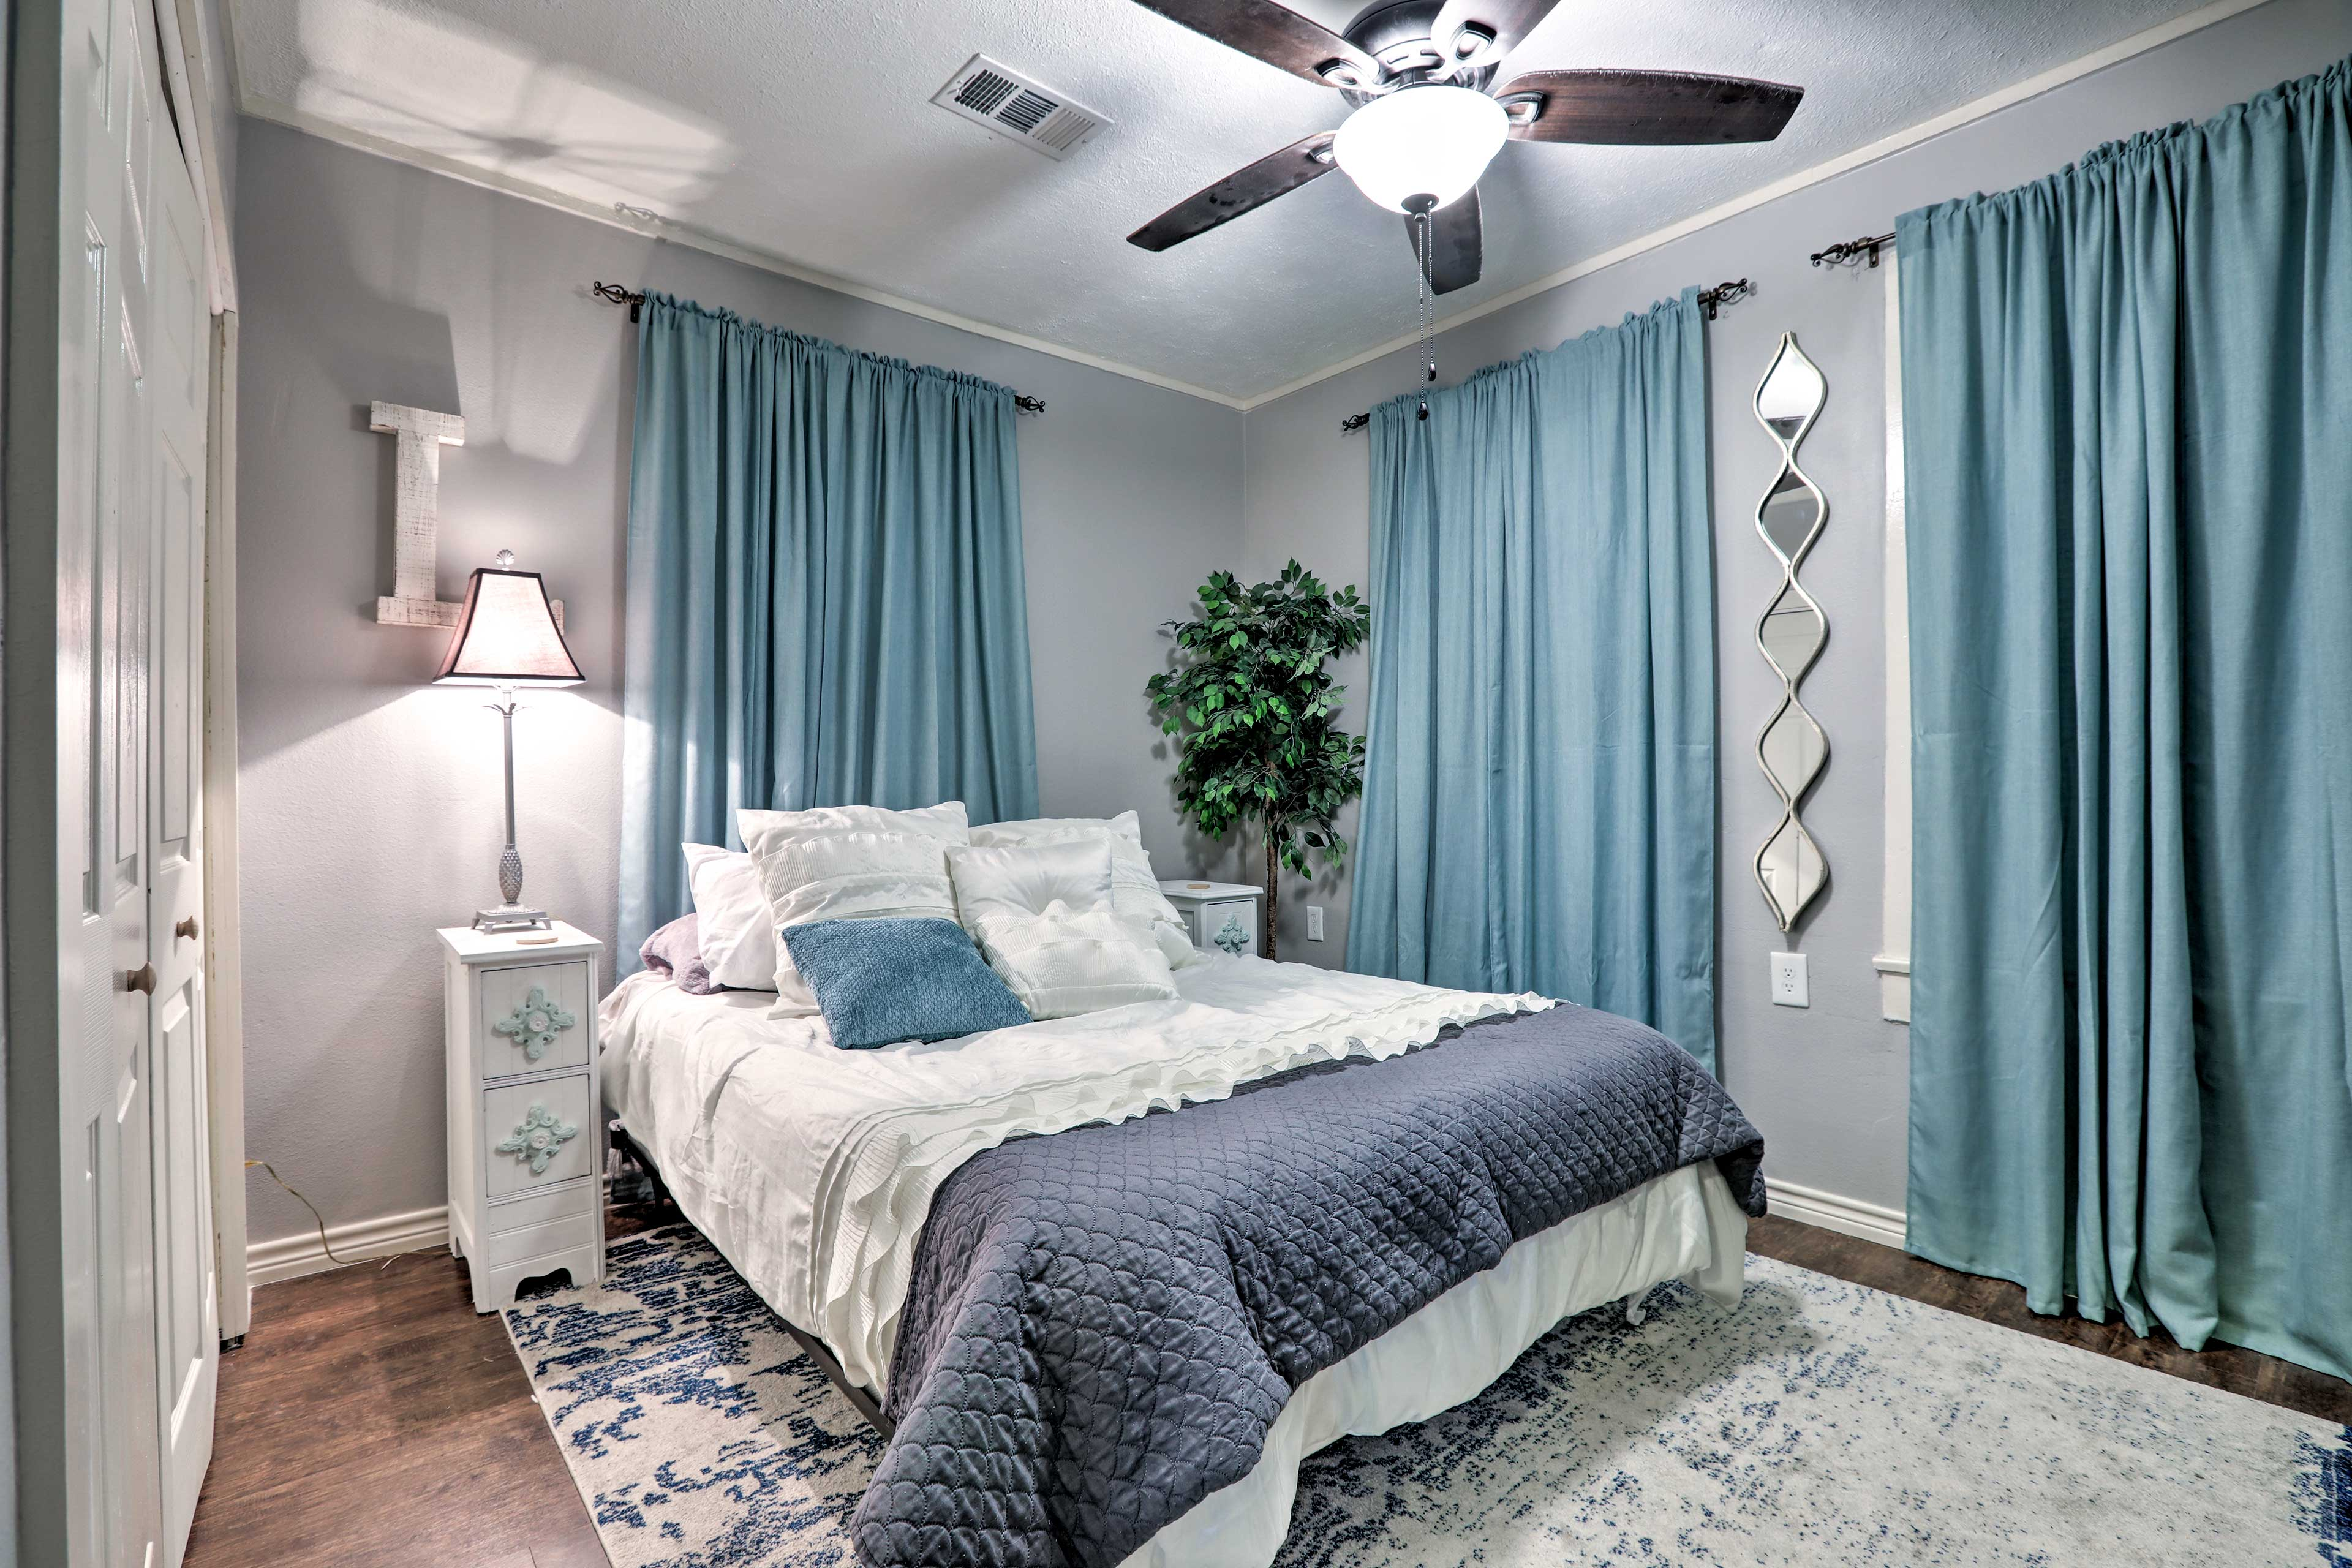 Heads of the household will sleep peacefully in this lovely master bedroom.